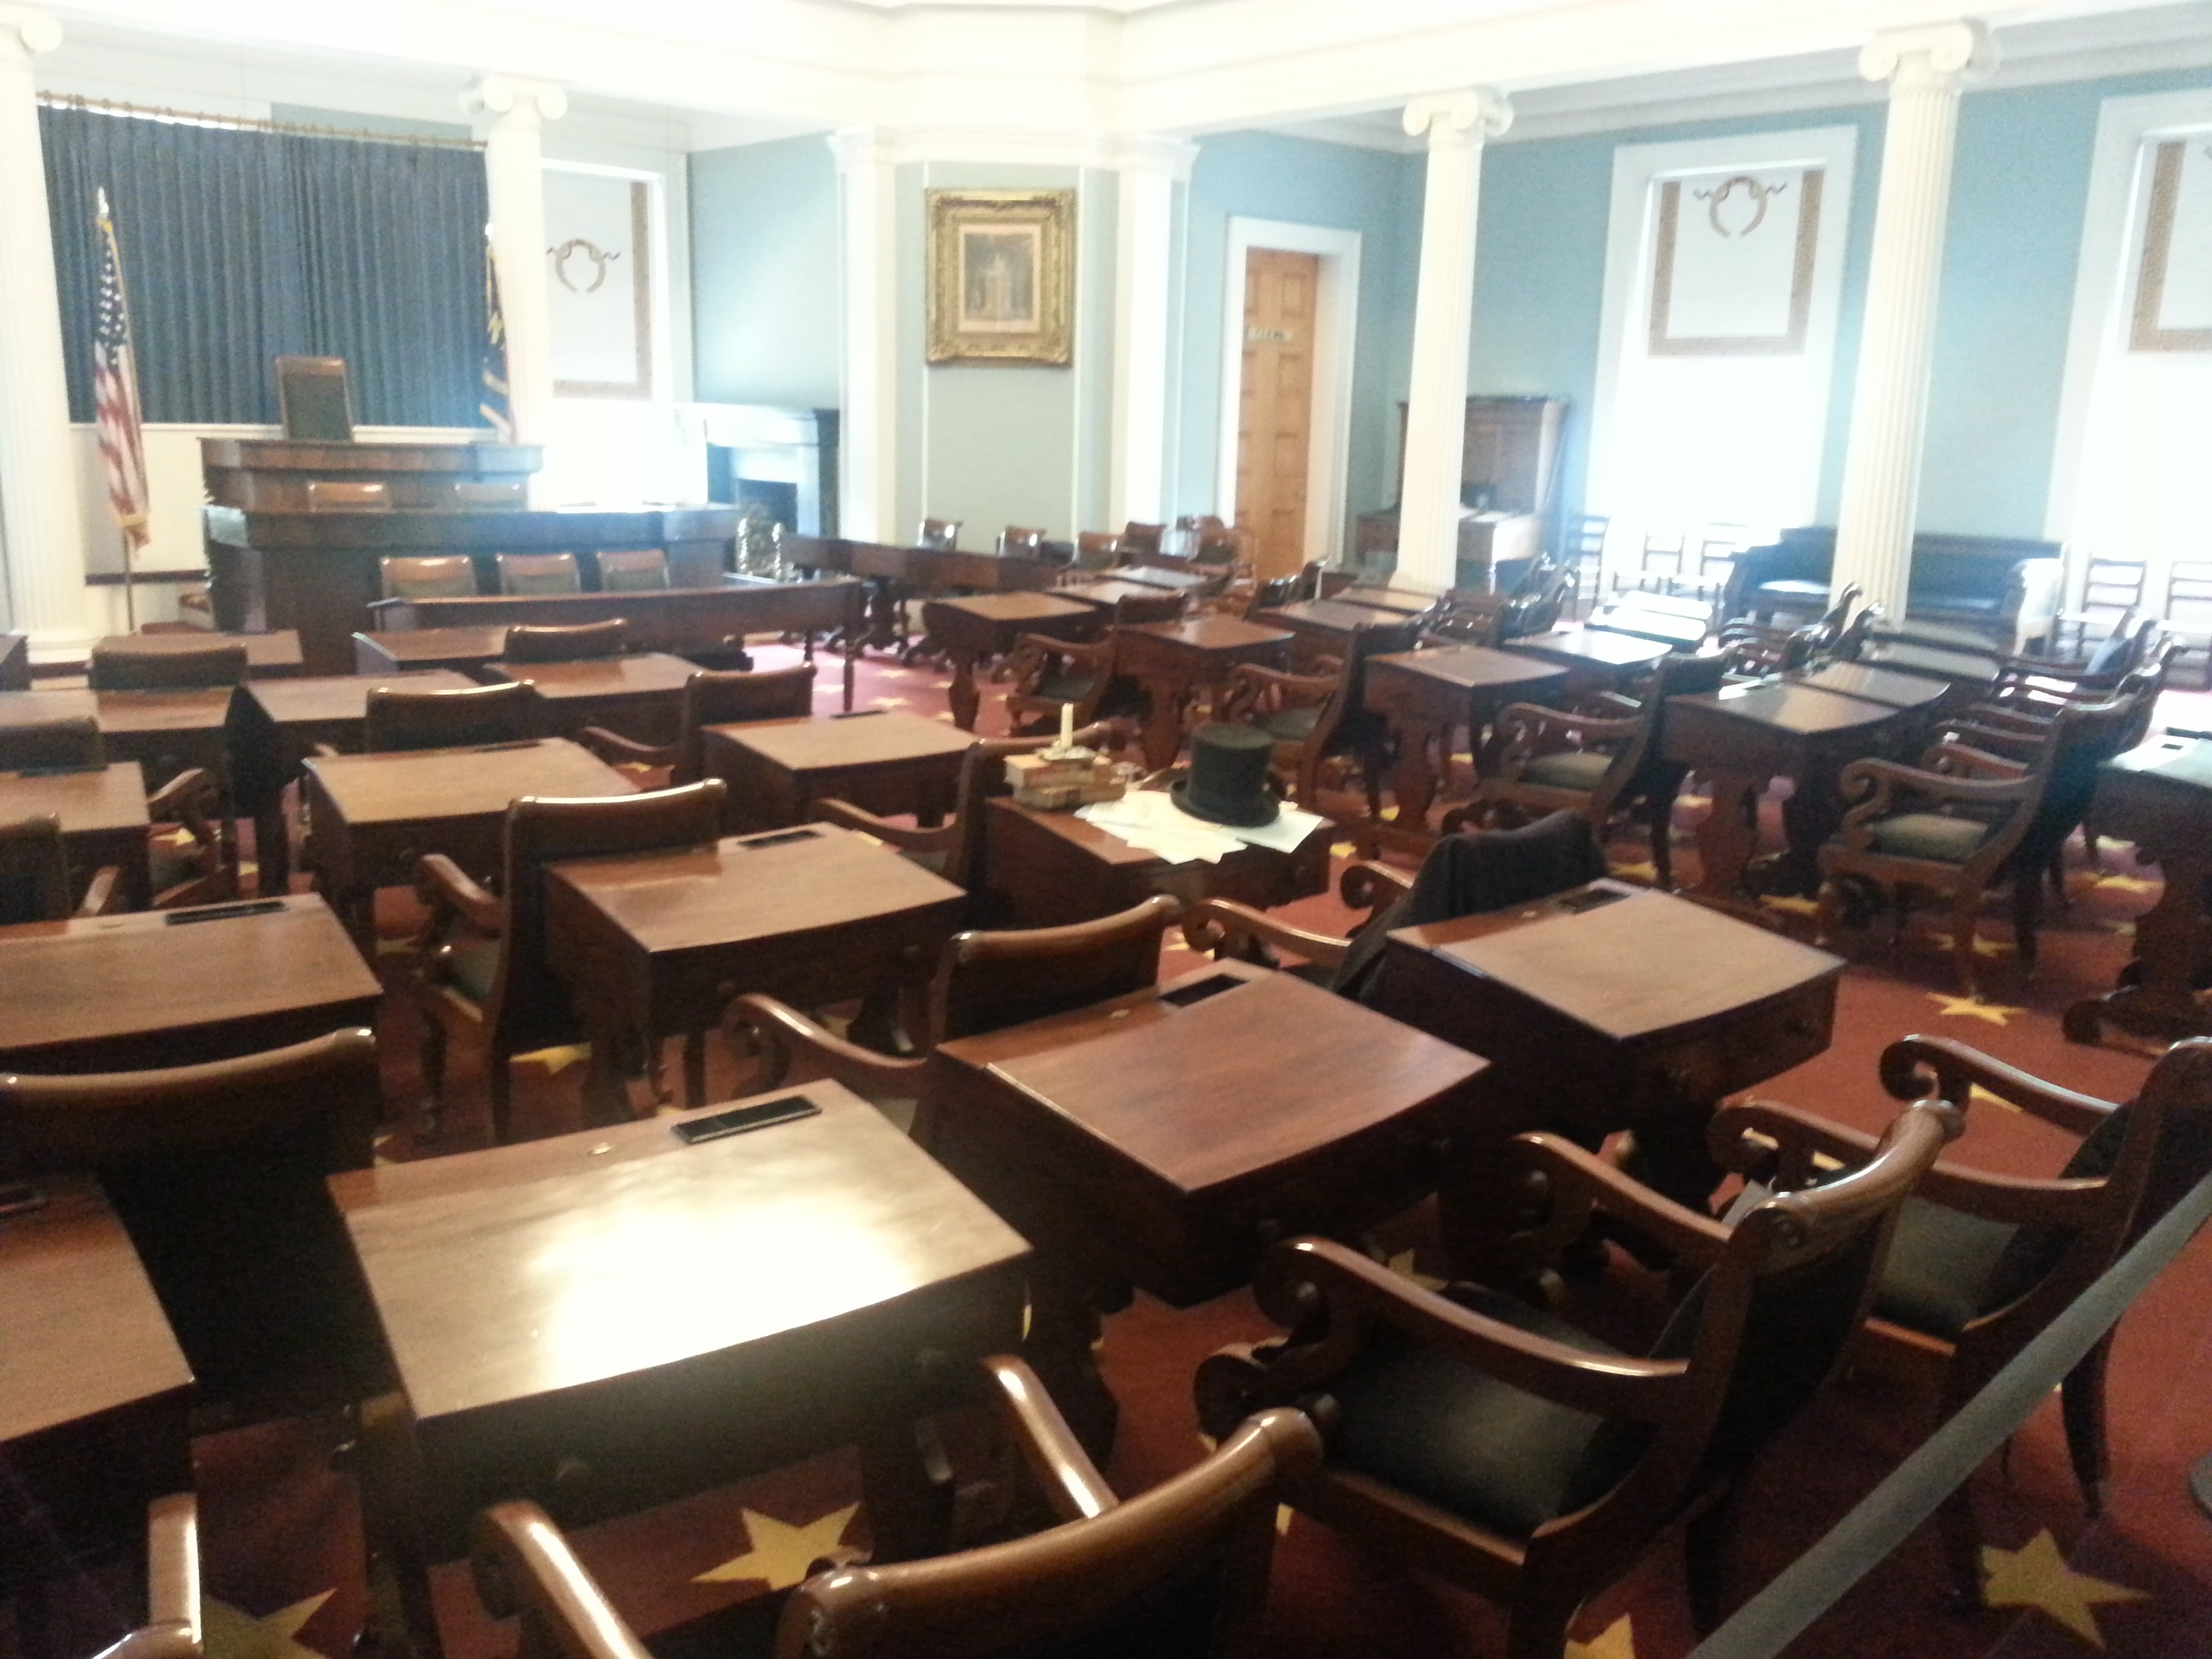 This room housed the North Carolina Senate from 1840 to 1961.